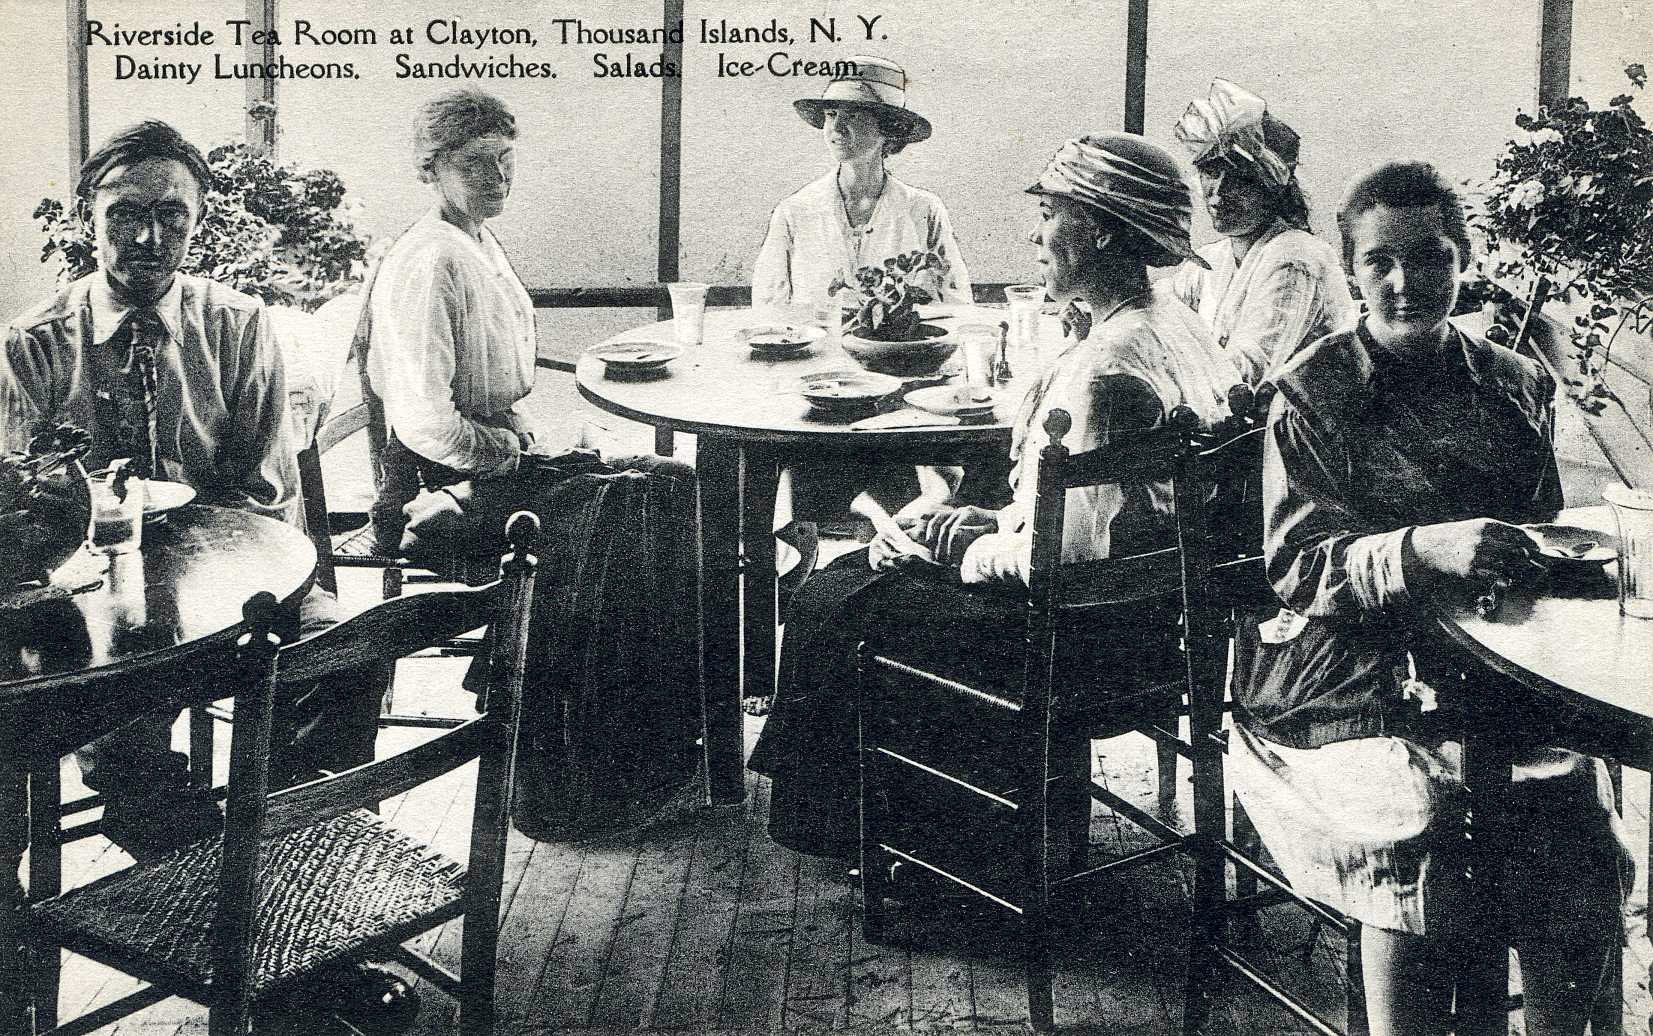 From Patrons to Chefs, a History of Women in Restaurants